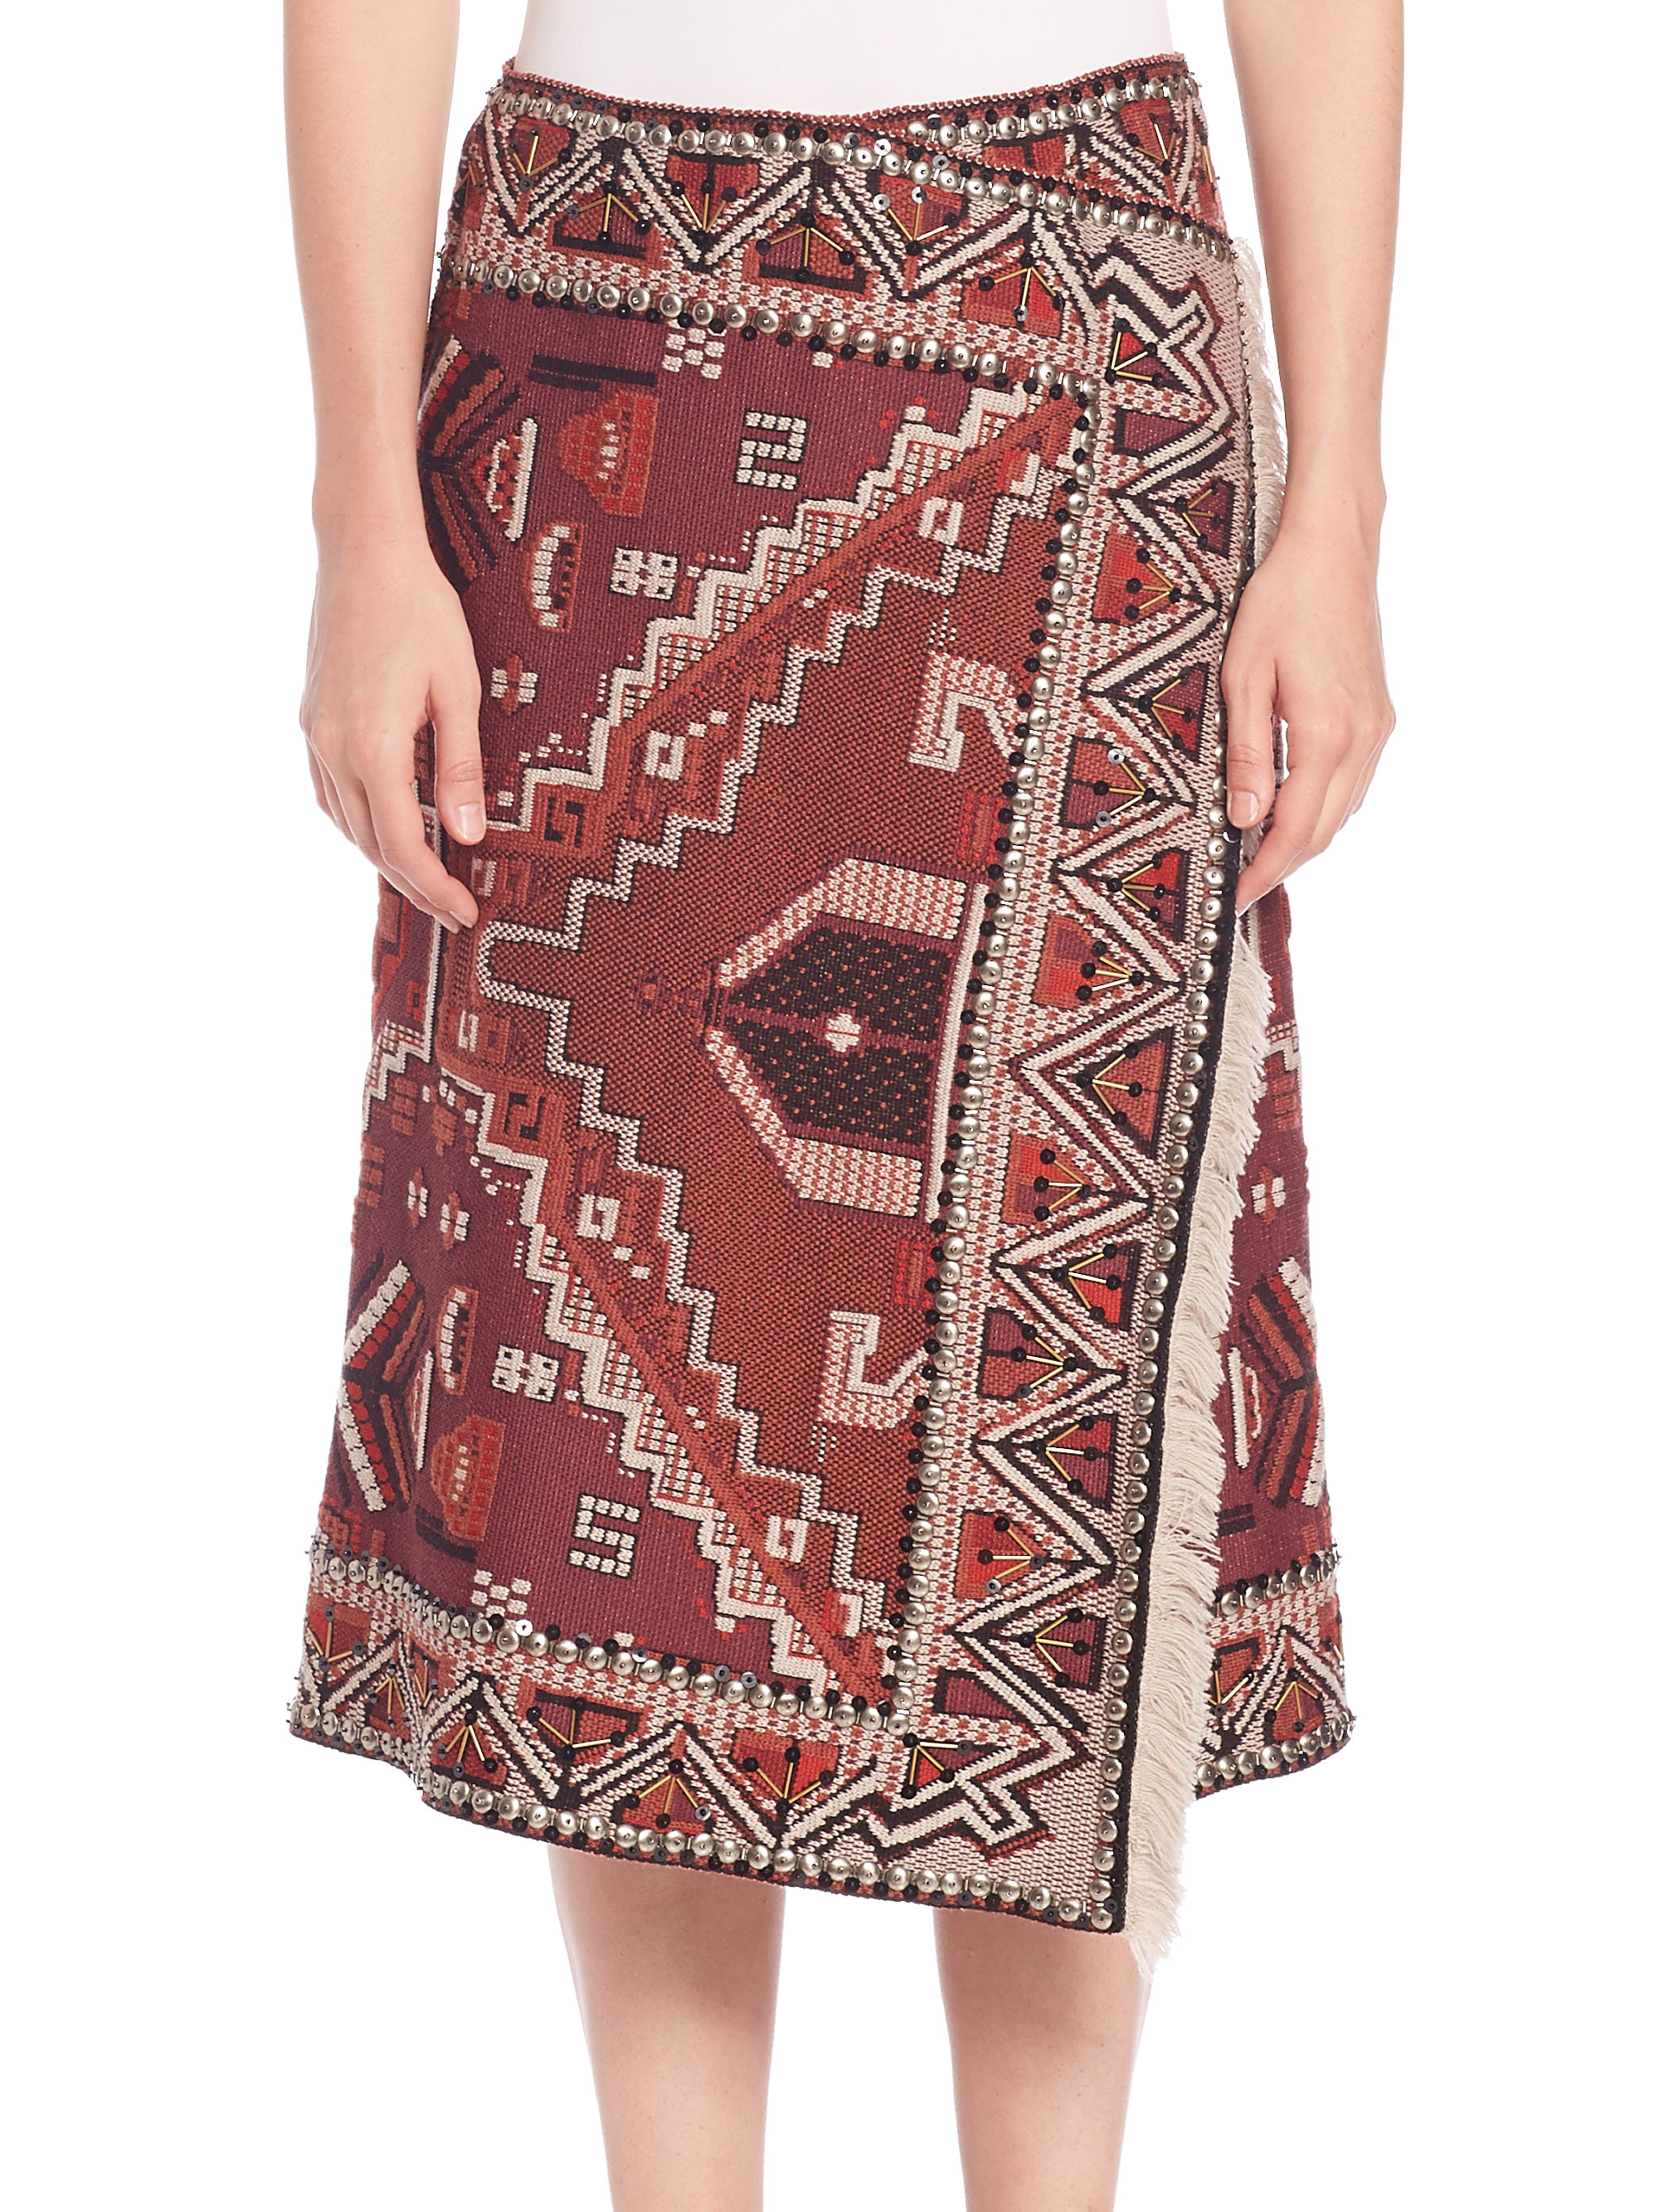 tory burch embellished tapestry jacquard wrap skirt in red